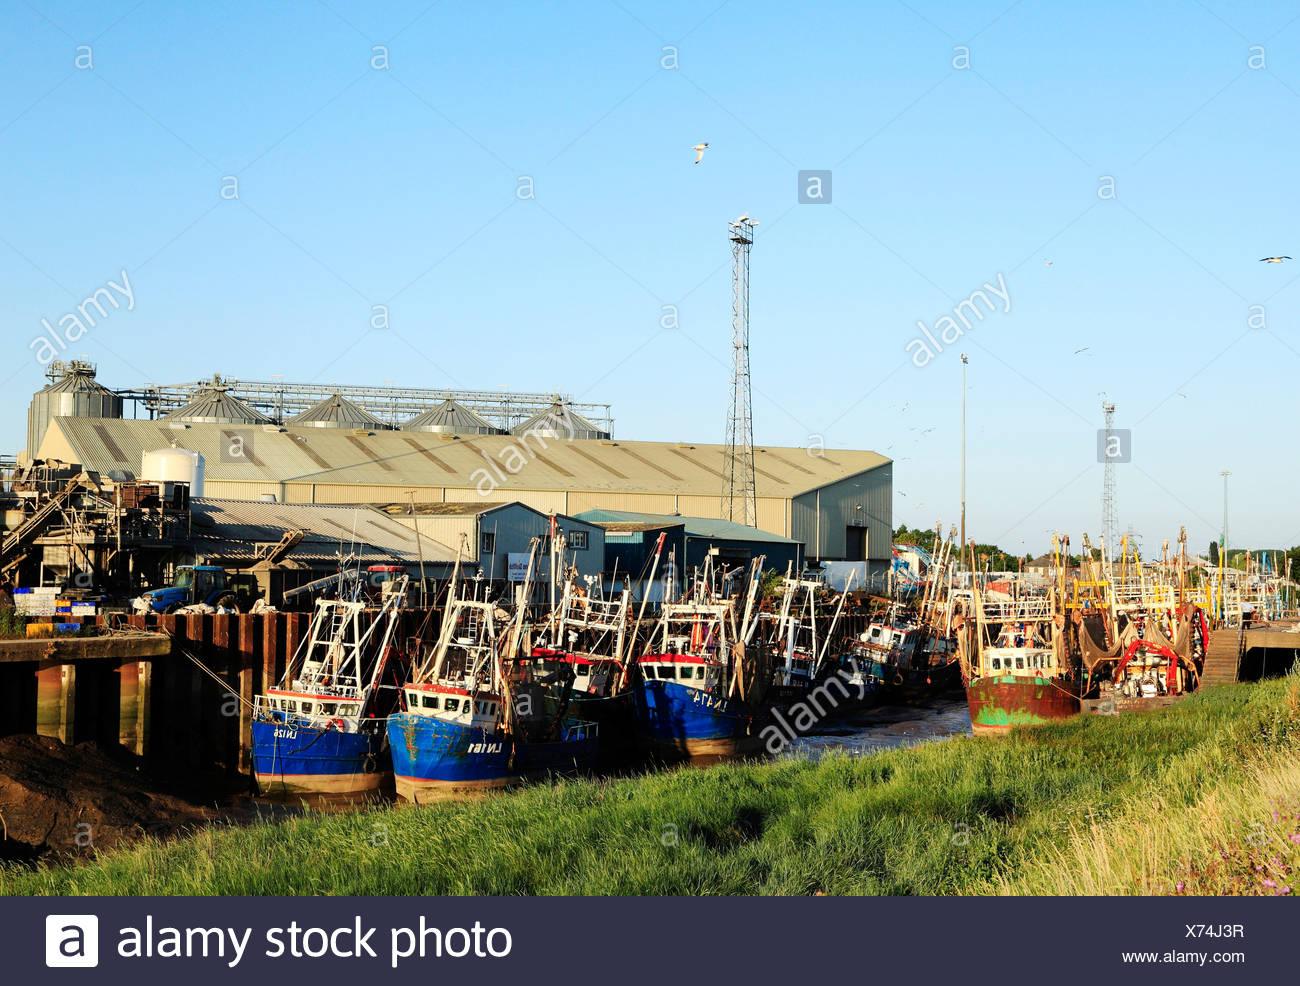 Kings Lynn, Port and Fishing Fleet,.Norfolk England UK, boats vessels quayside industrial harbour fishery harbor - Stock Image